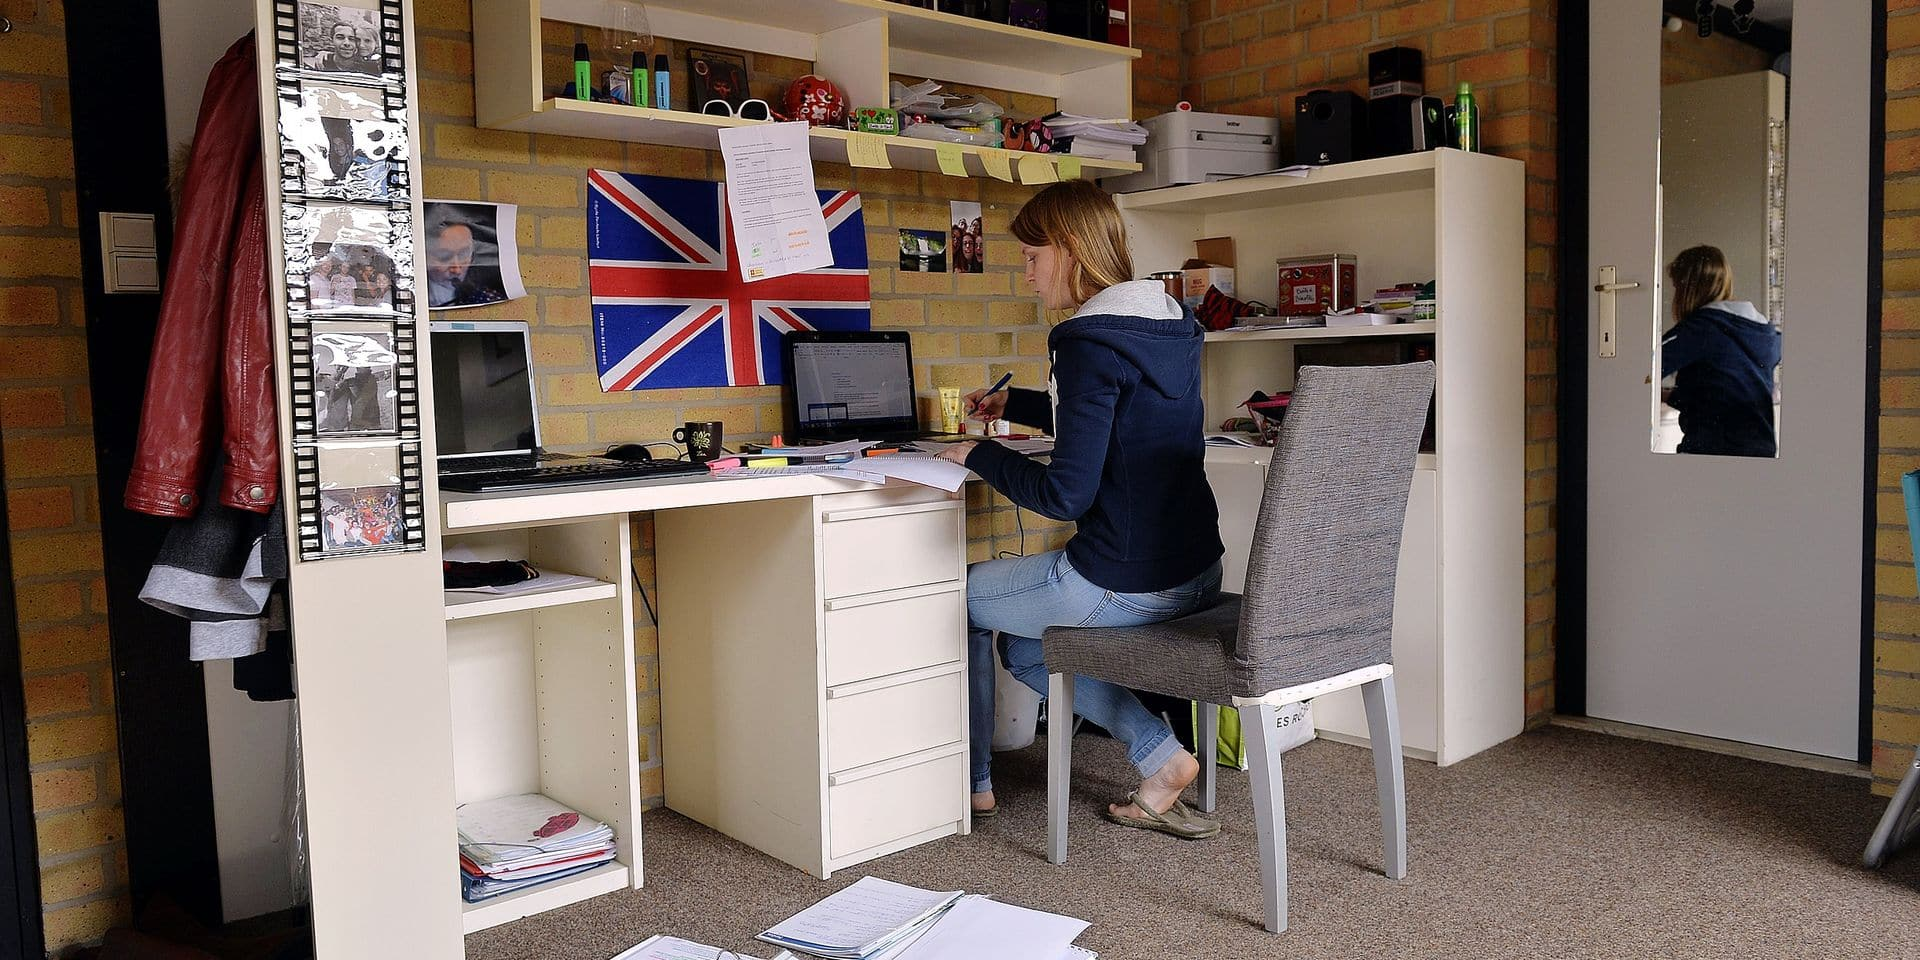 20150408 - BRUSSELS, BELGIUM: Illustration picture shows a student studying in a student's room in Woluwe-Saint-Lambert - Sint-Lambrechts-Woluwe, Brussels Wednesday 08 April 2015. BELGA PHOTO ERIC LALMAND